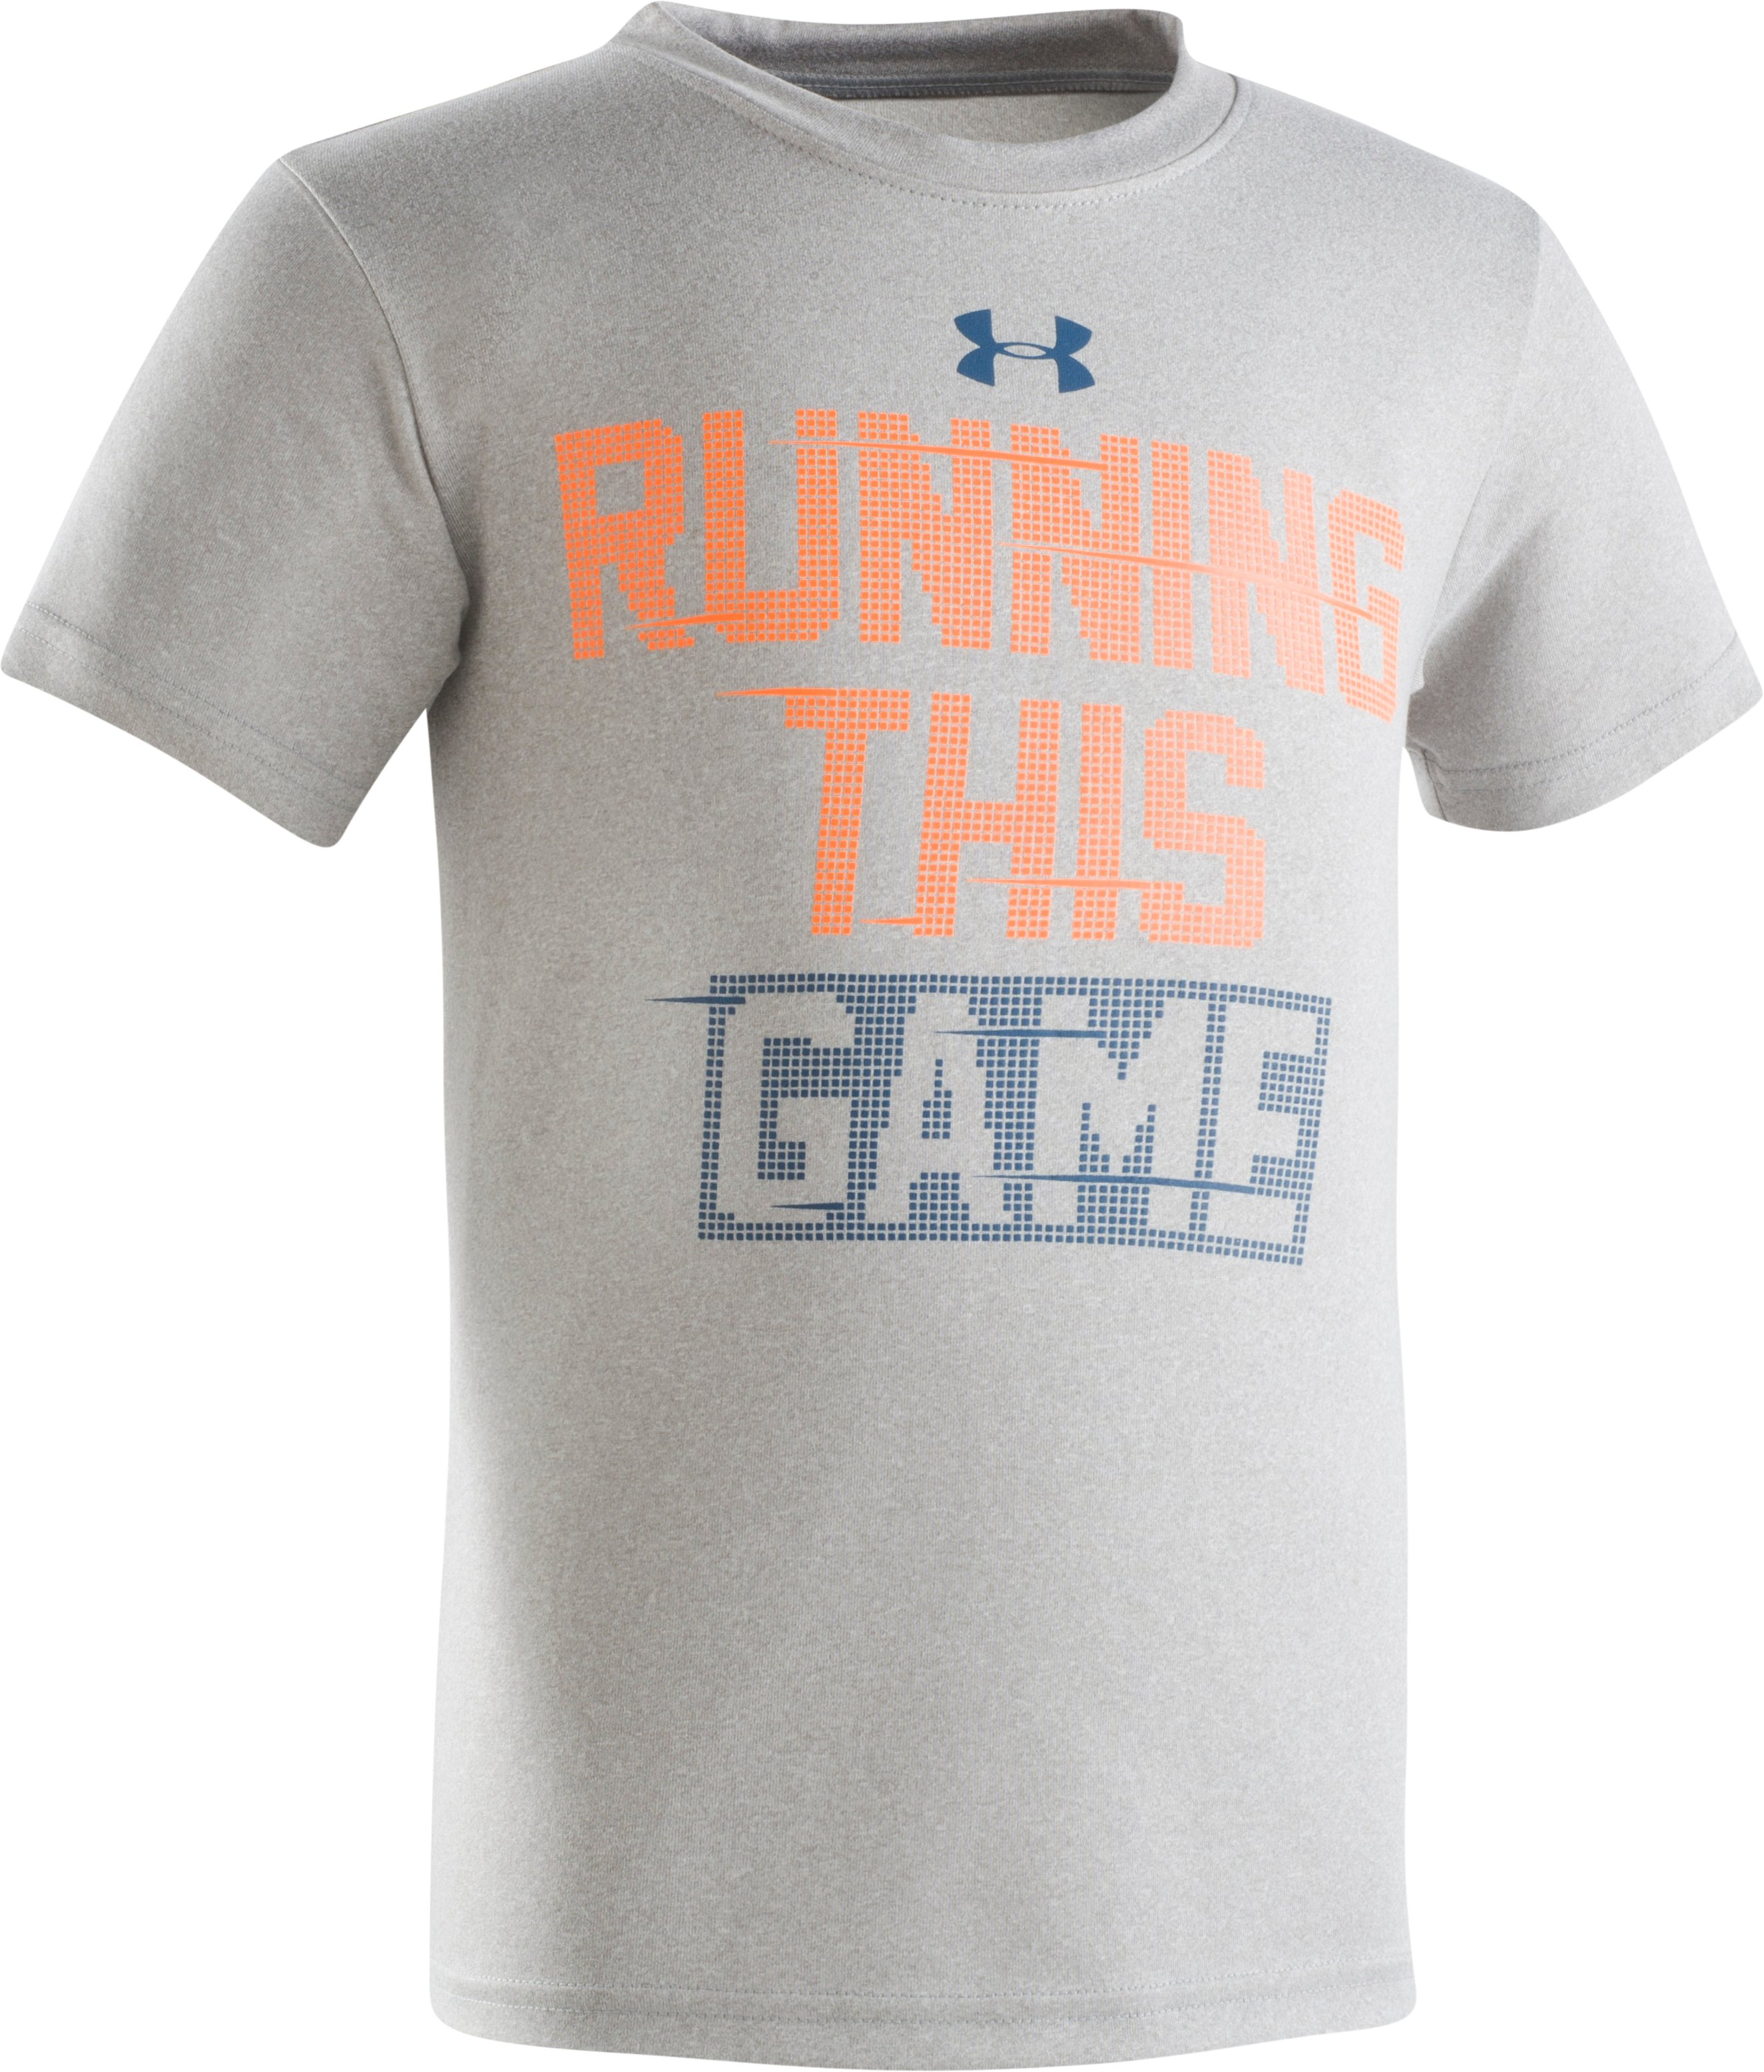 Boys' Pre-School UA Running This Game Short Sleeve Shirt, True Gray Heather, Laydown